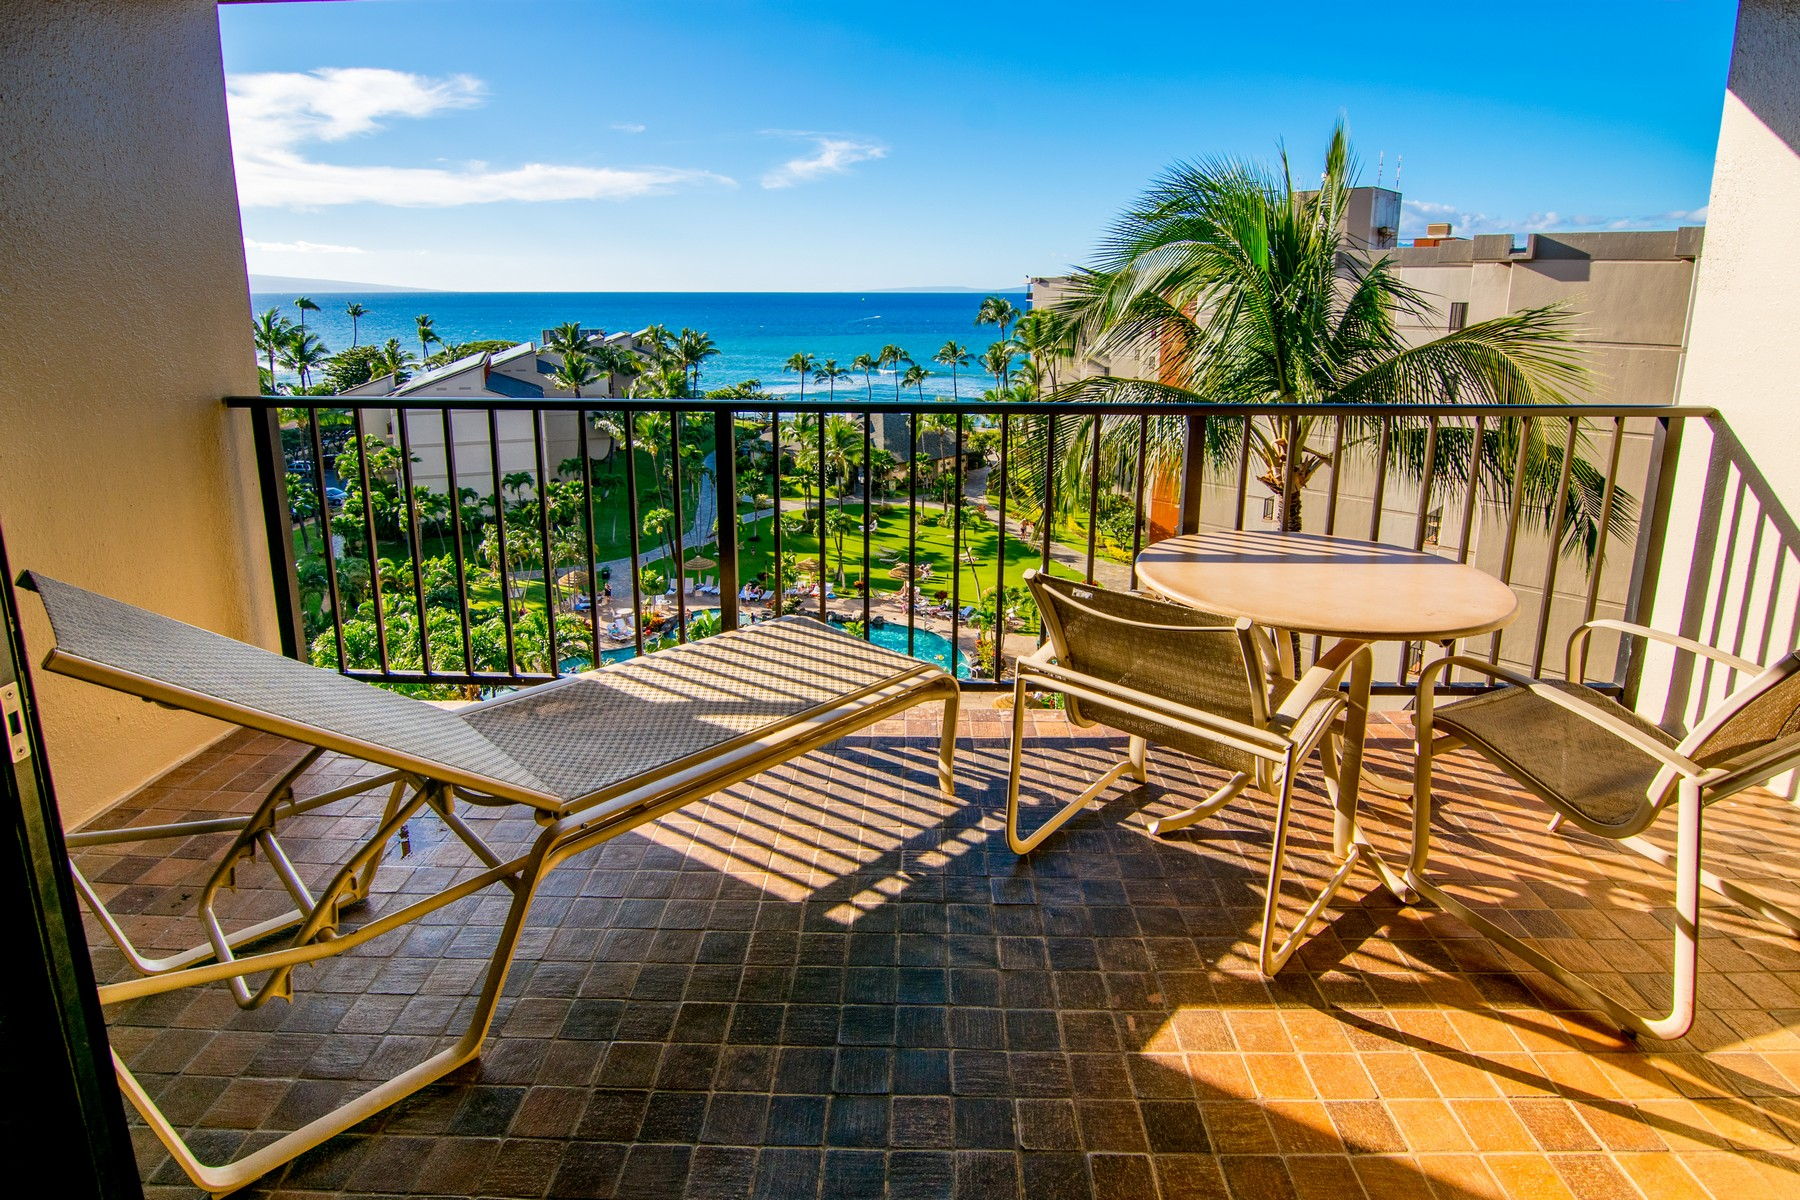 Copropriété pour l Vente à Kaanapali Luxury Condo With Incredible Views 3445 Lower Honoapiilani Road, Kaanapali Shores 927 Kaanapali, Hawaii, 96761 États-Unis